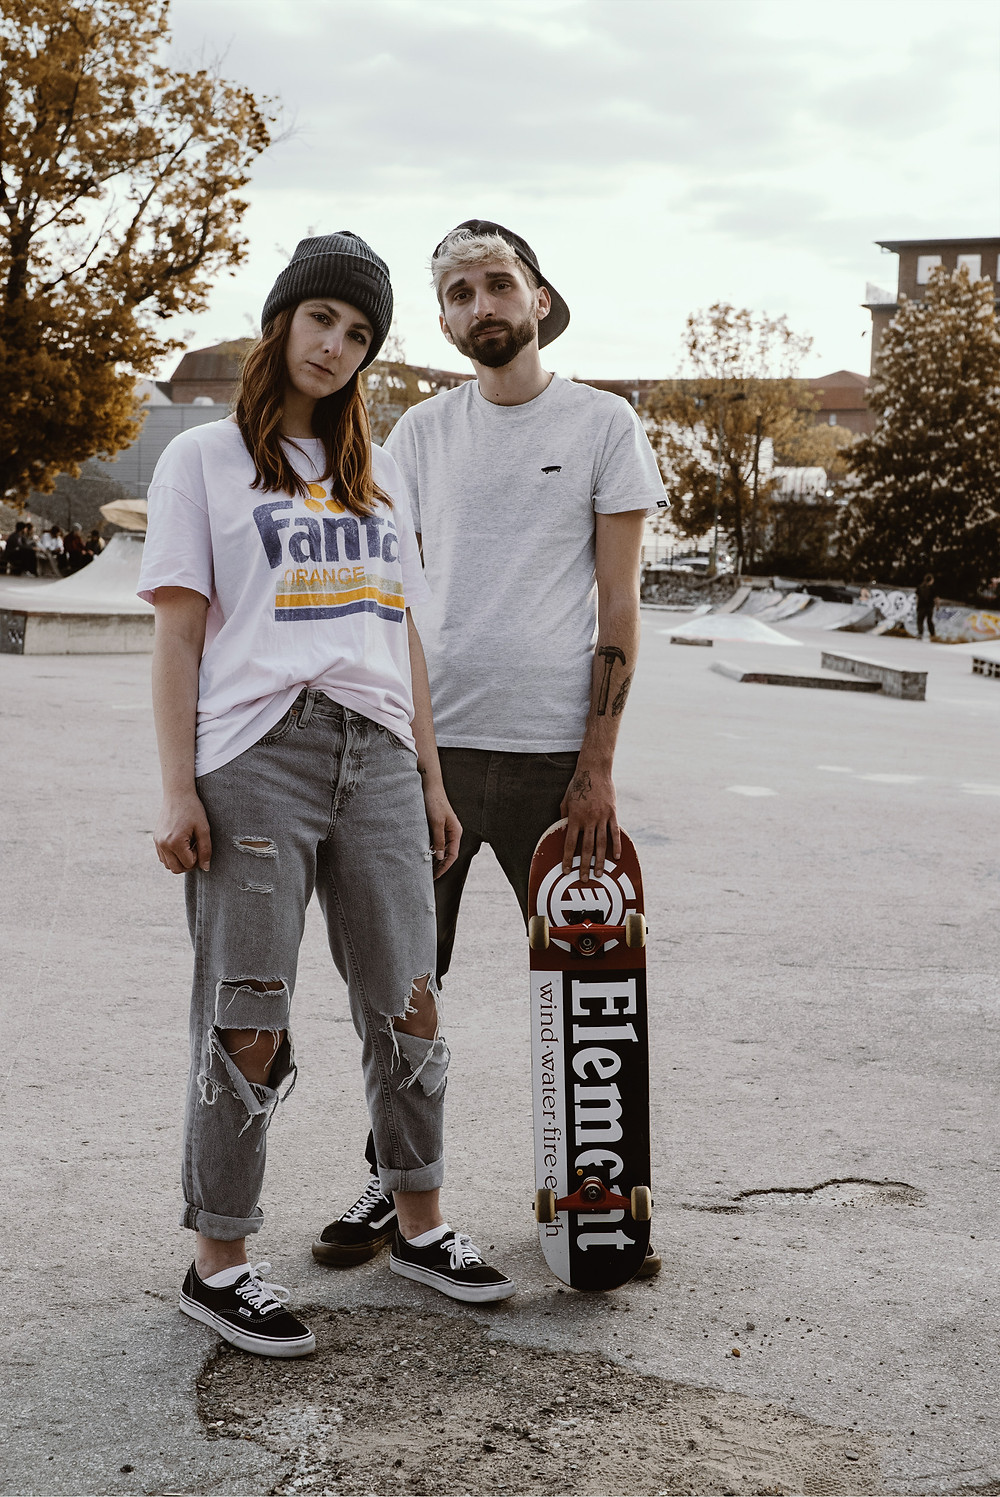 two skaters modeling at a skater parc